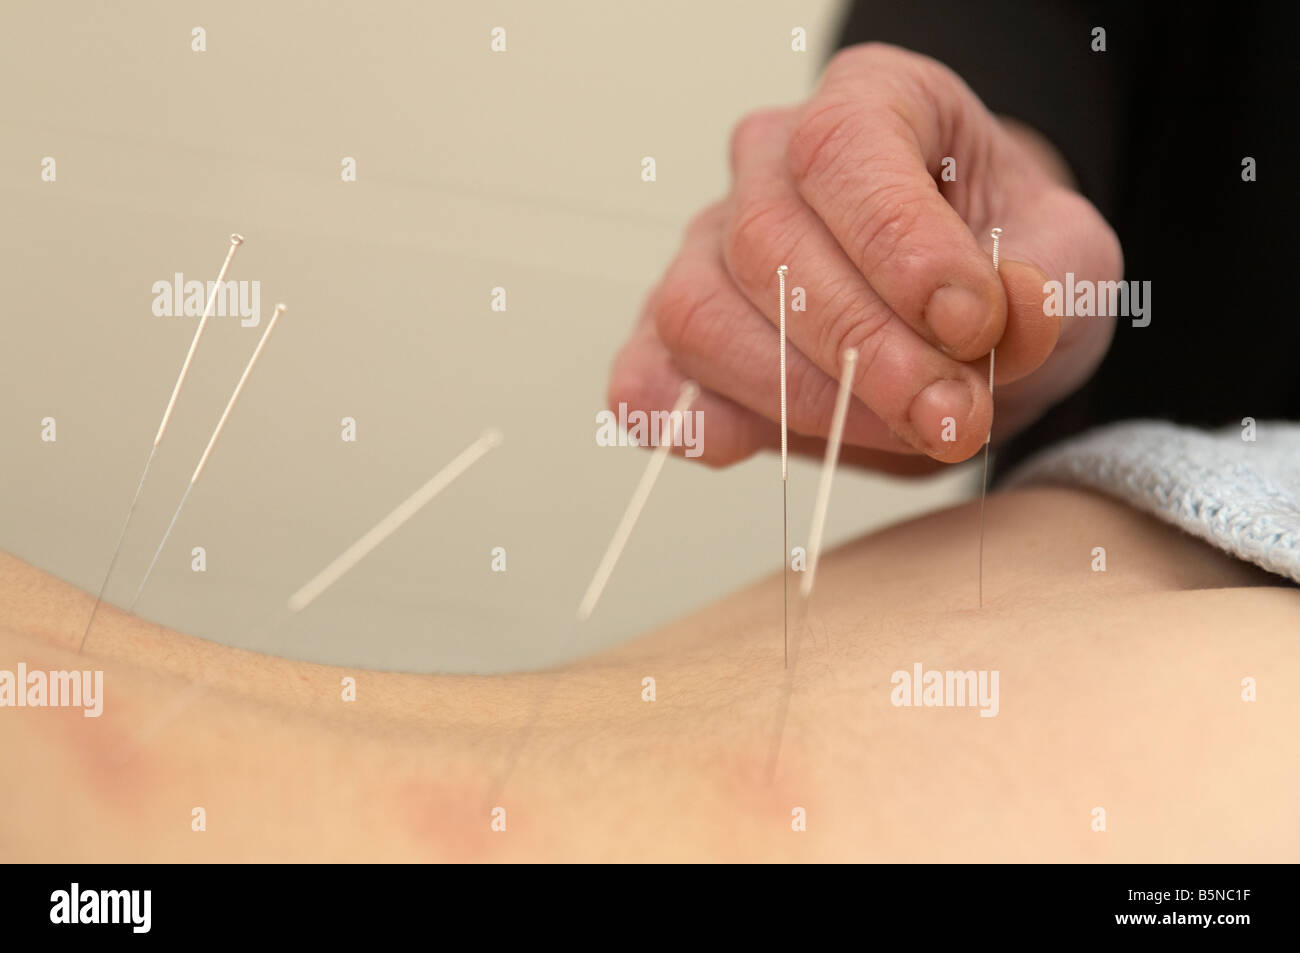 female acupuncturist applying acupuncture needles to the lower back of an adult woman late twenties to relieve back - Stock Image